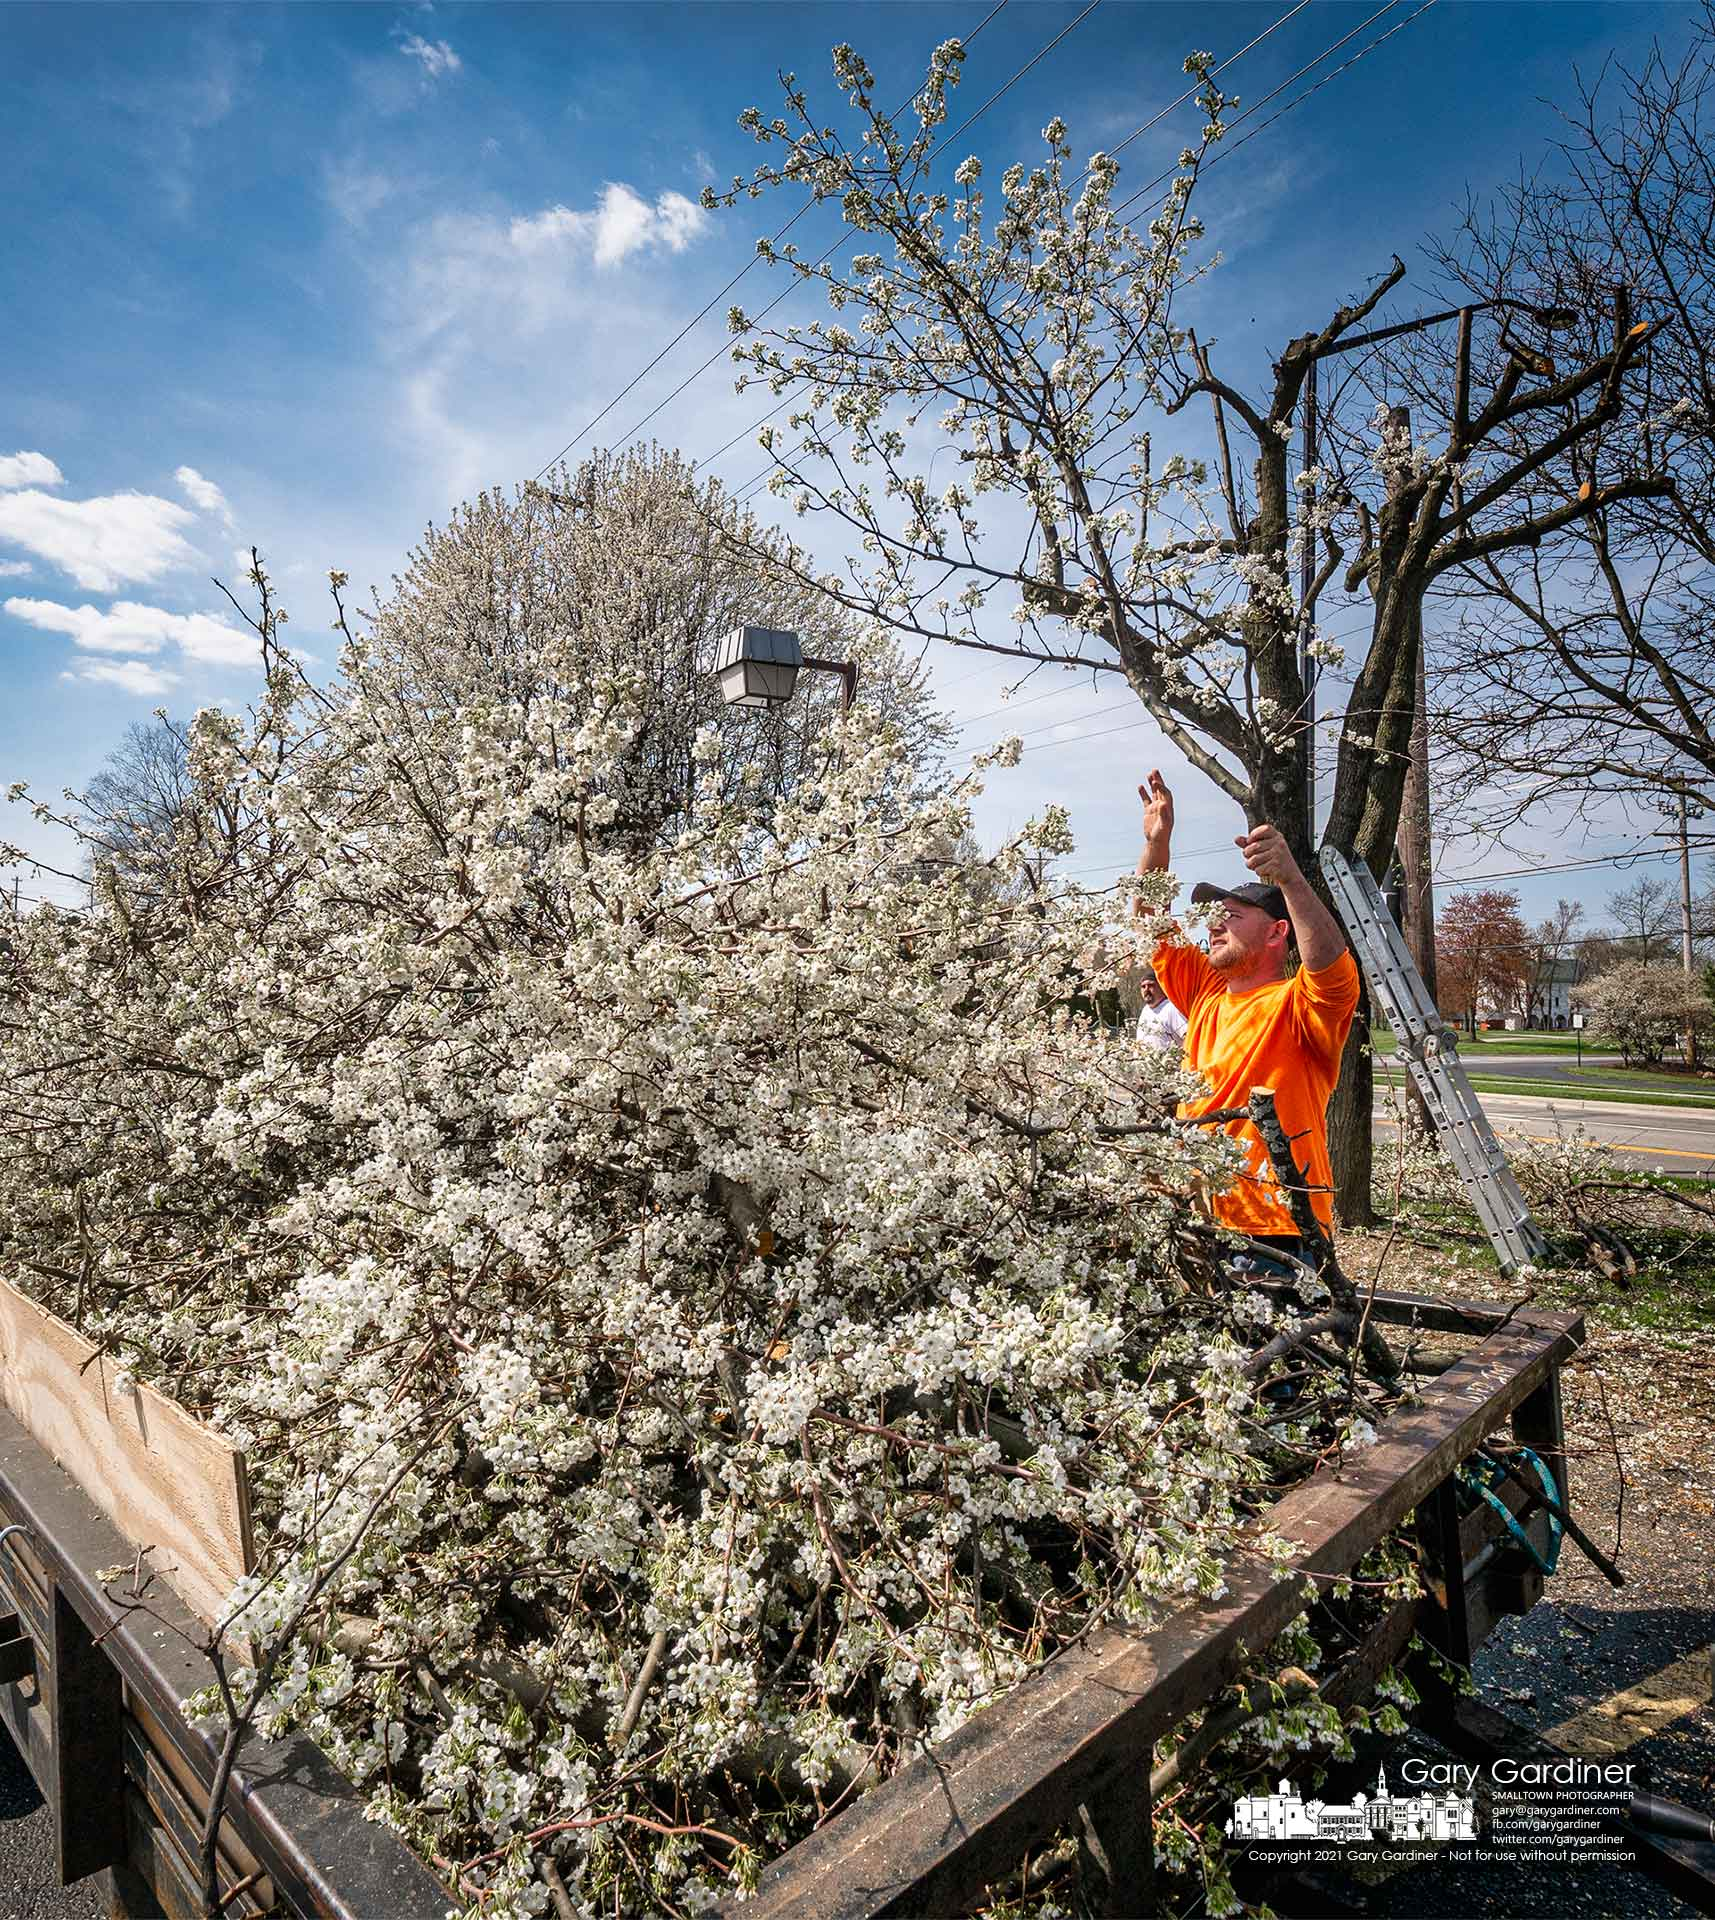 A tree trimmer tosses at blossoming limb from a Bradford pear being heavily trimmed into a hauling truck at the parking lot of a business on West Main. My Final Photo for April 6, 2021.